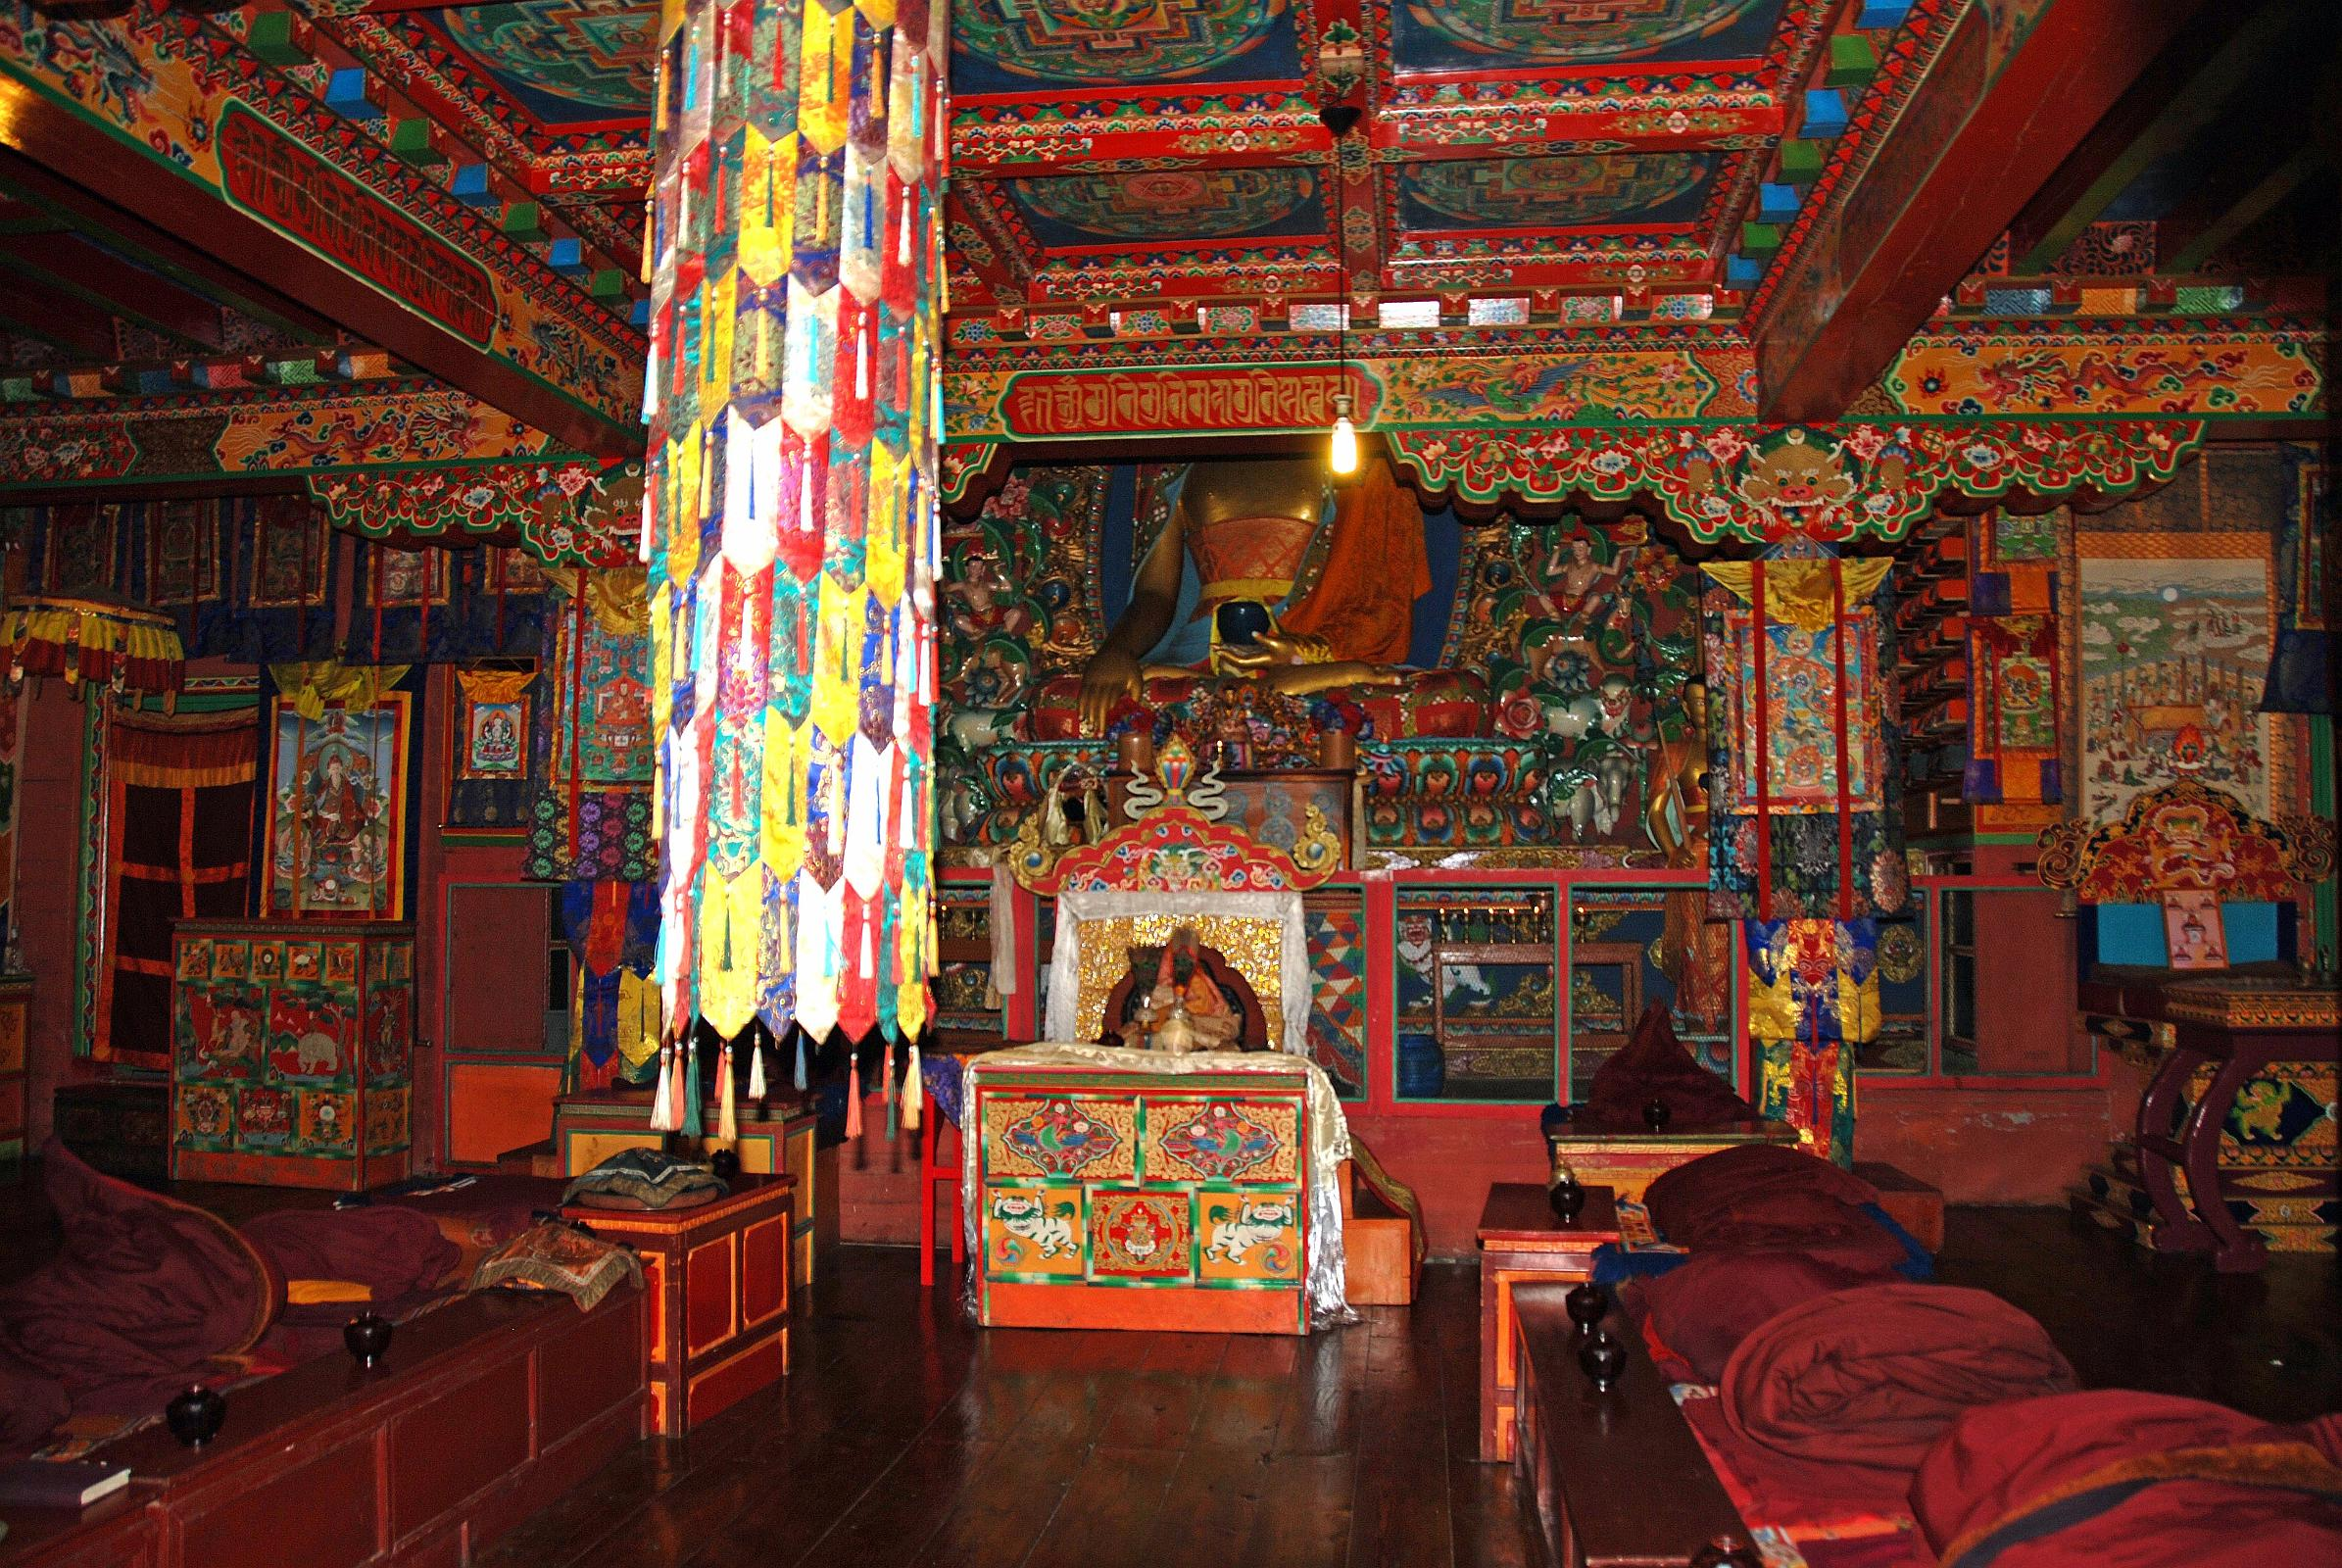 20 Tengboche Gompa - Wide View Of Altar